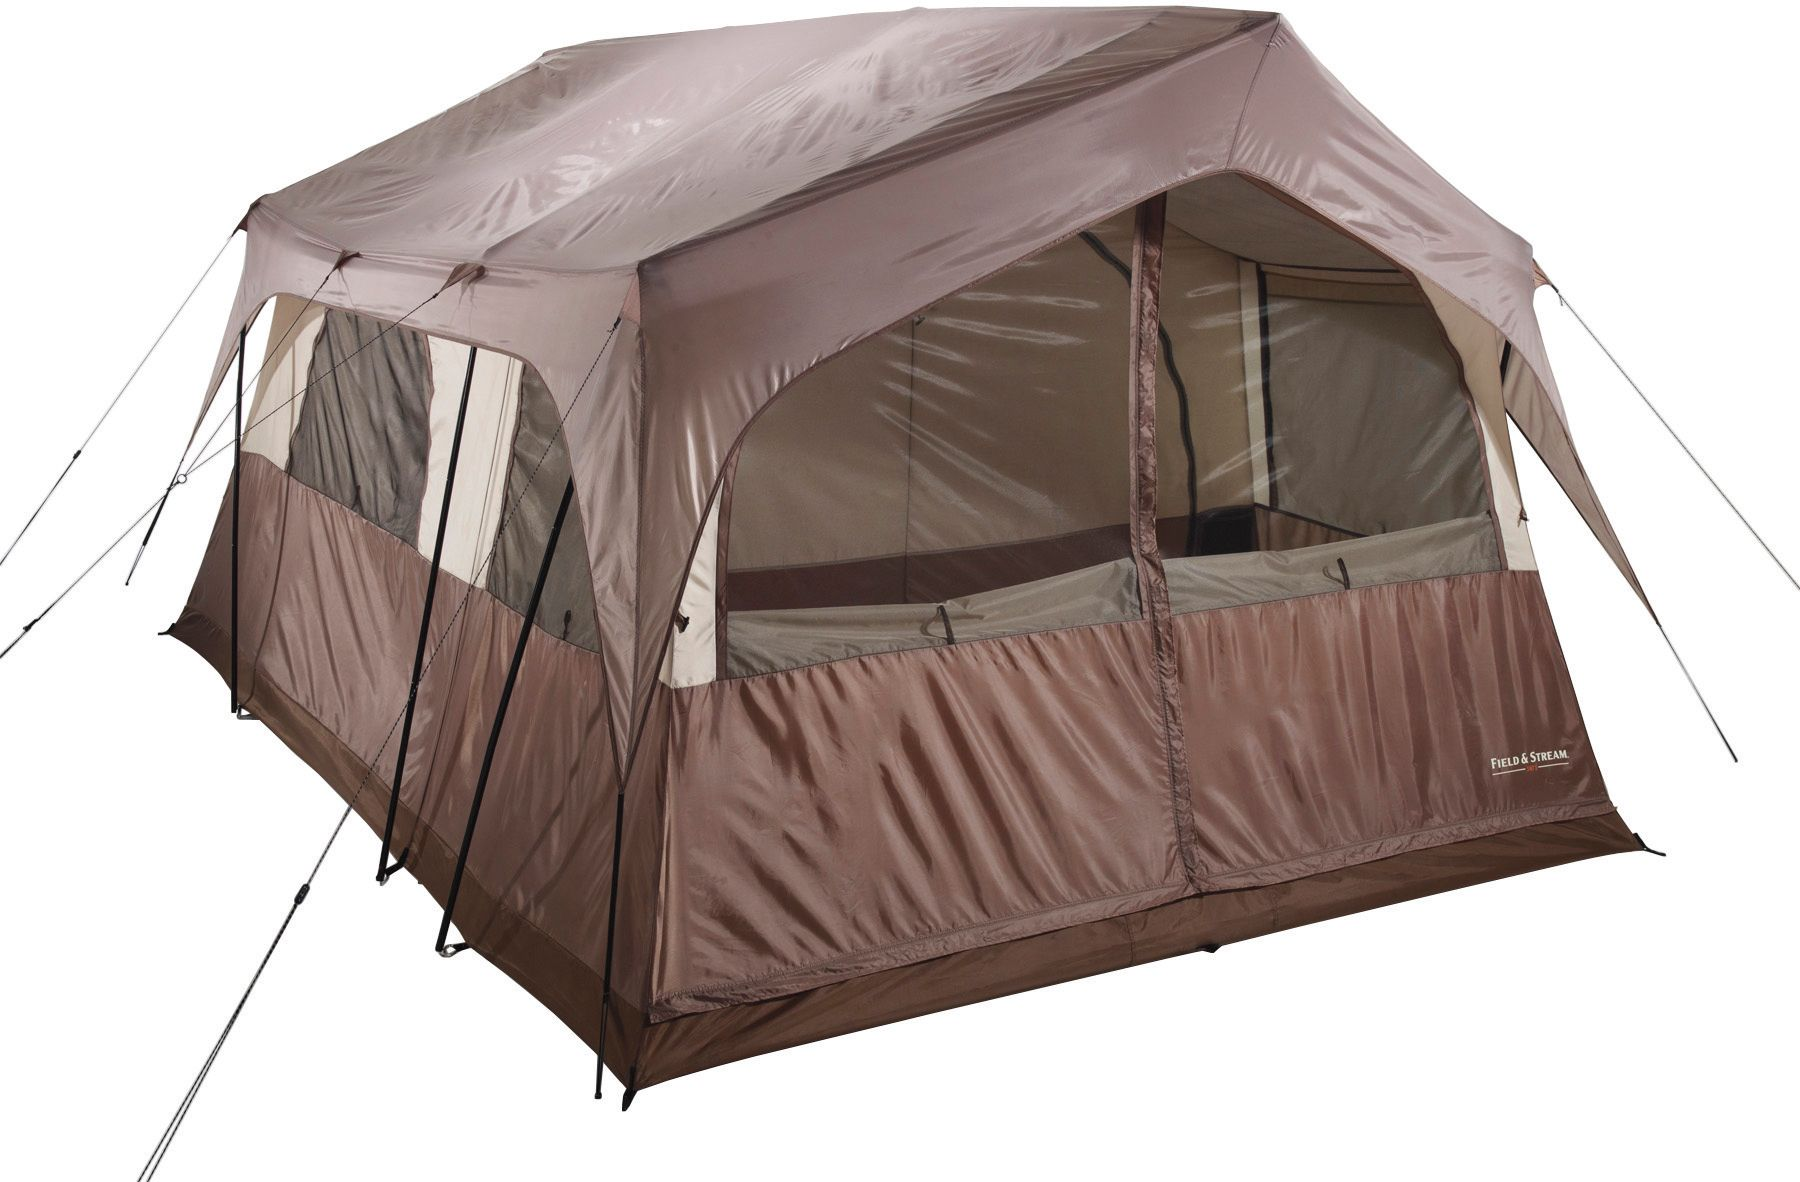 Product Image Field u0026 Stream Wilderness Cabin 10 Person Tent  sc 1 st  DICKu0027S Sporting Goods & Field u0026 Stream Camping Tents | DICKu0027S Sporting Goods